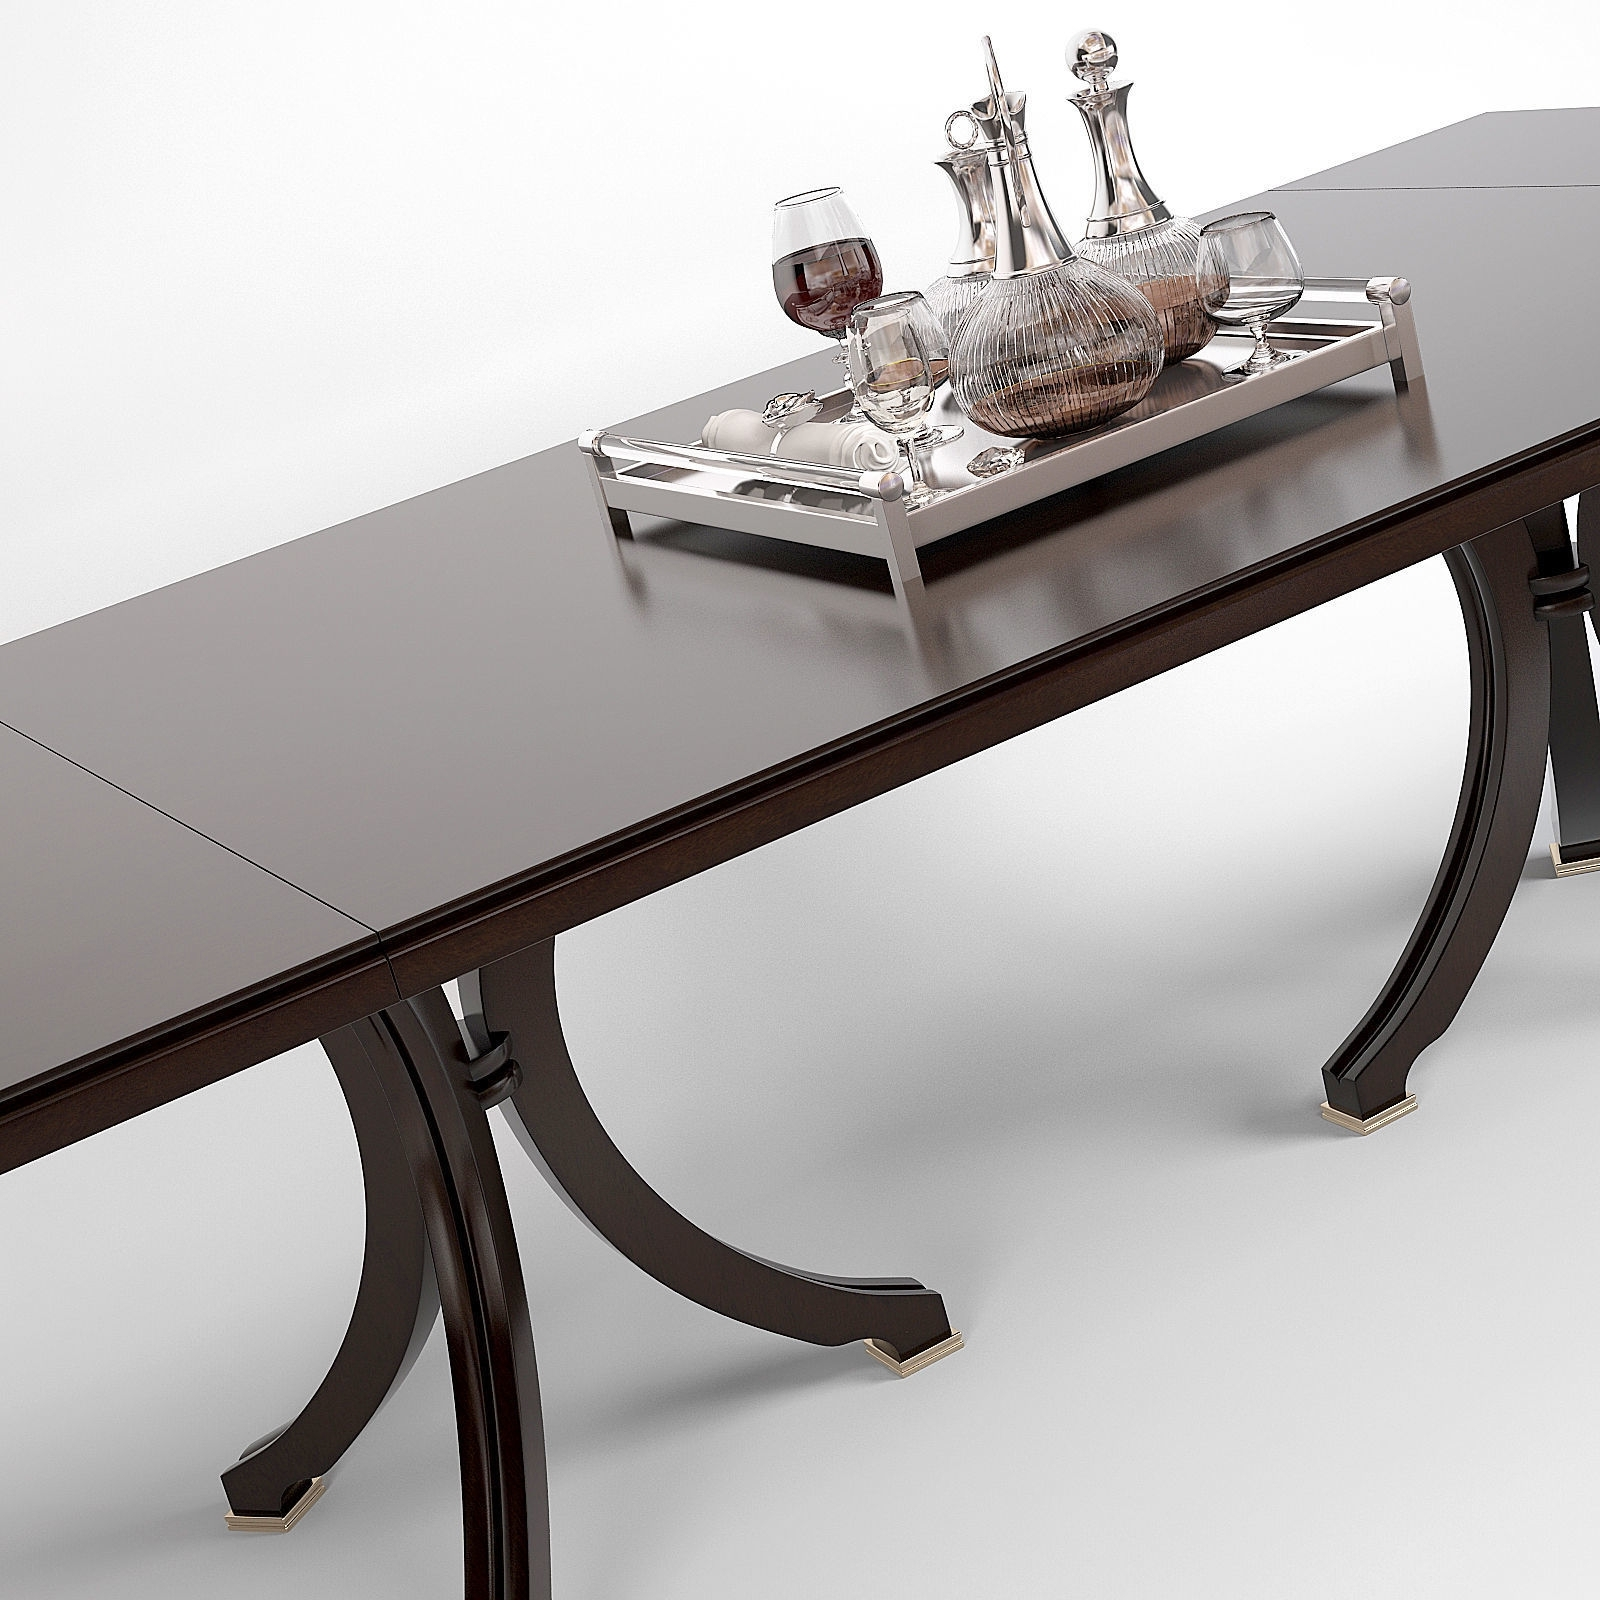 Cgtrader Throughout Vienna Dining Tables (View 19 of 25)